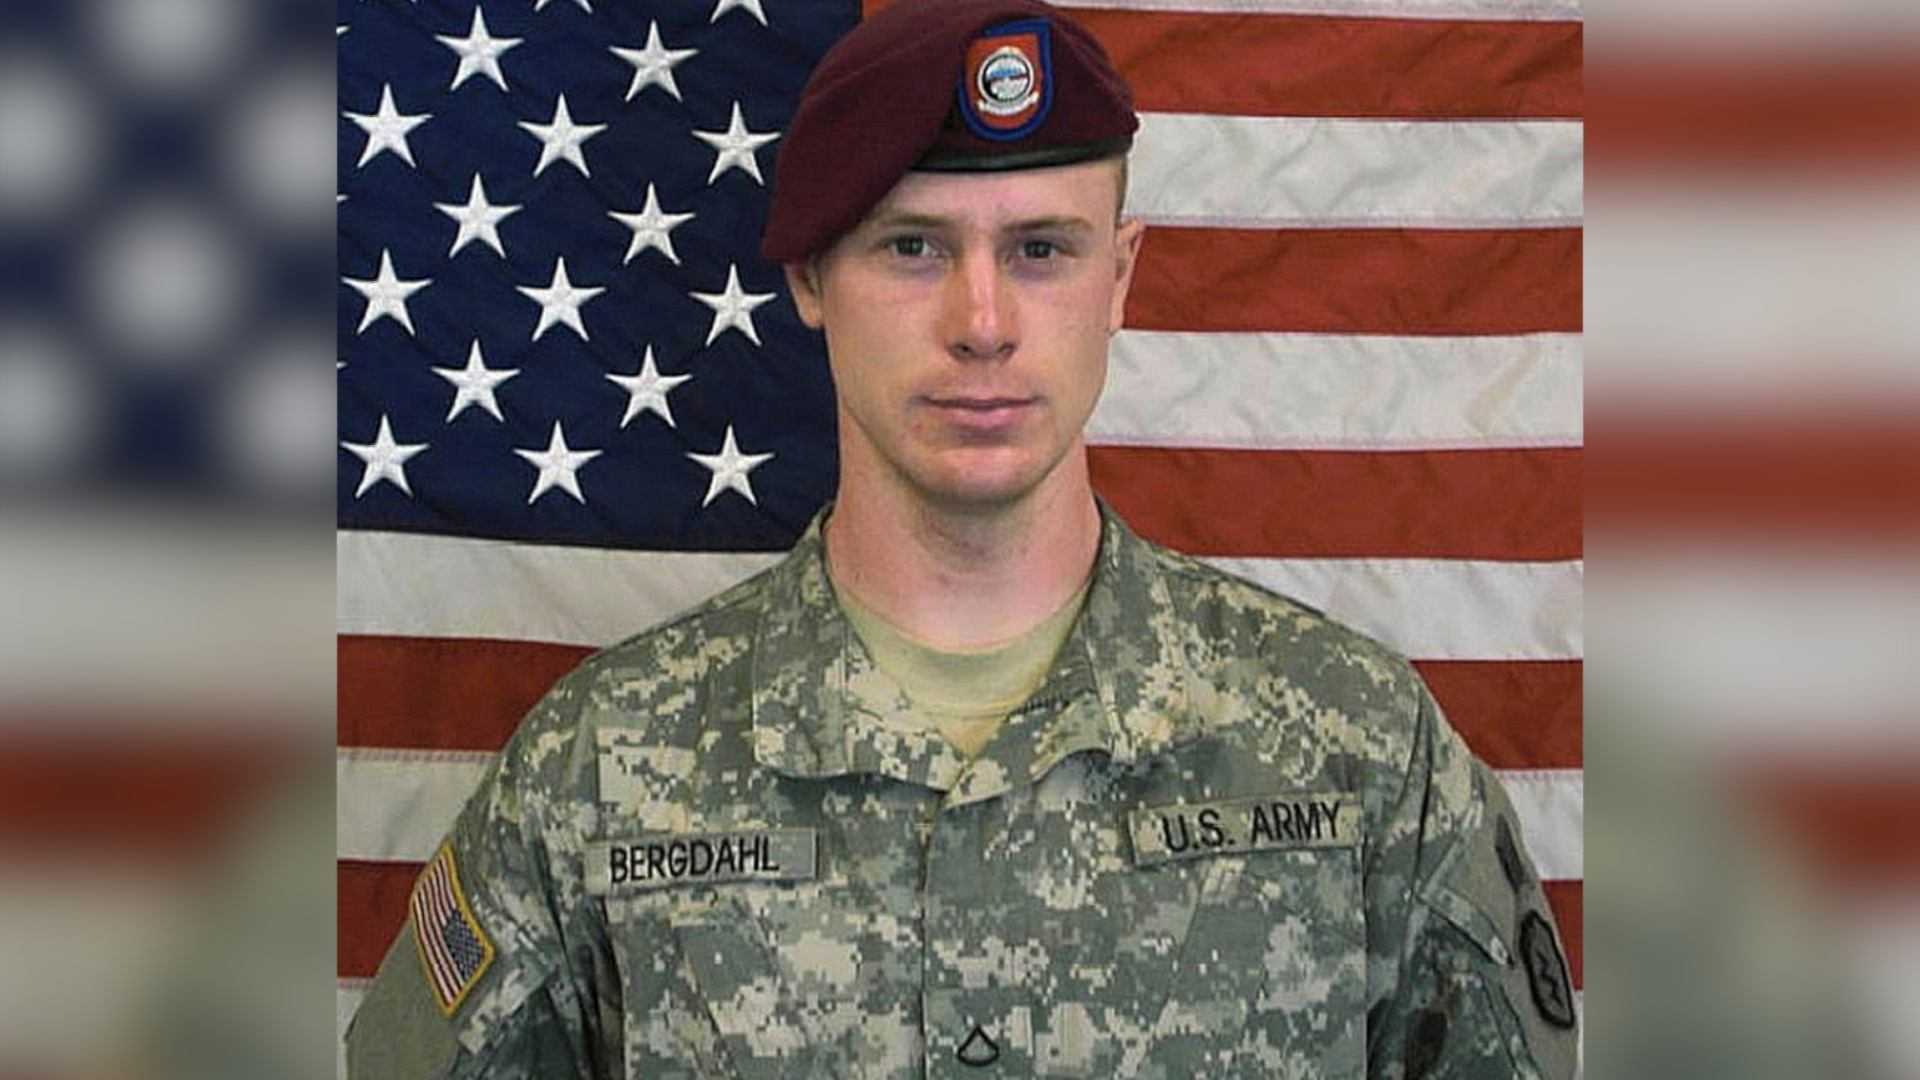 Disillusioned and self-deluded, Bowe Bergdahl vanished into a brutal captivity